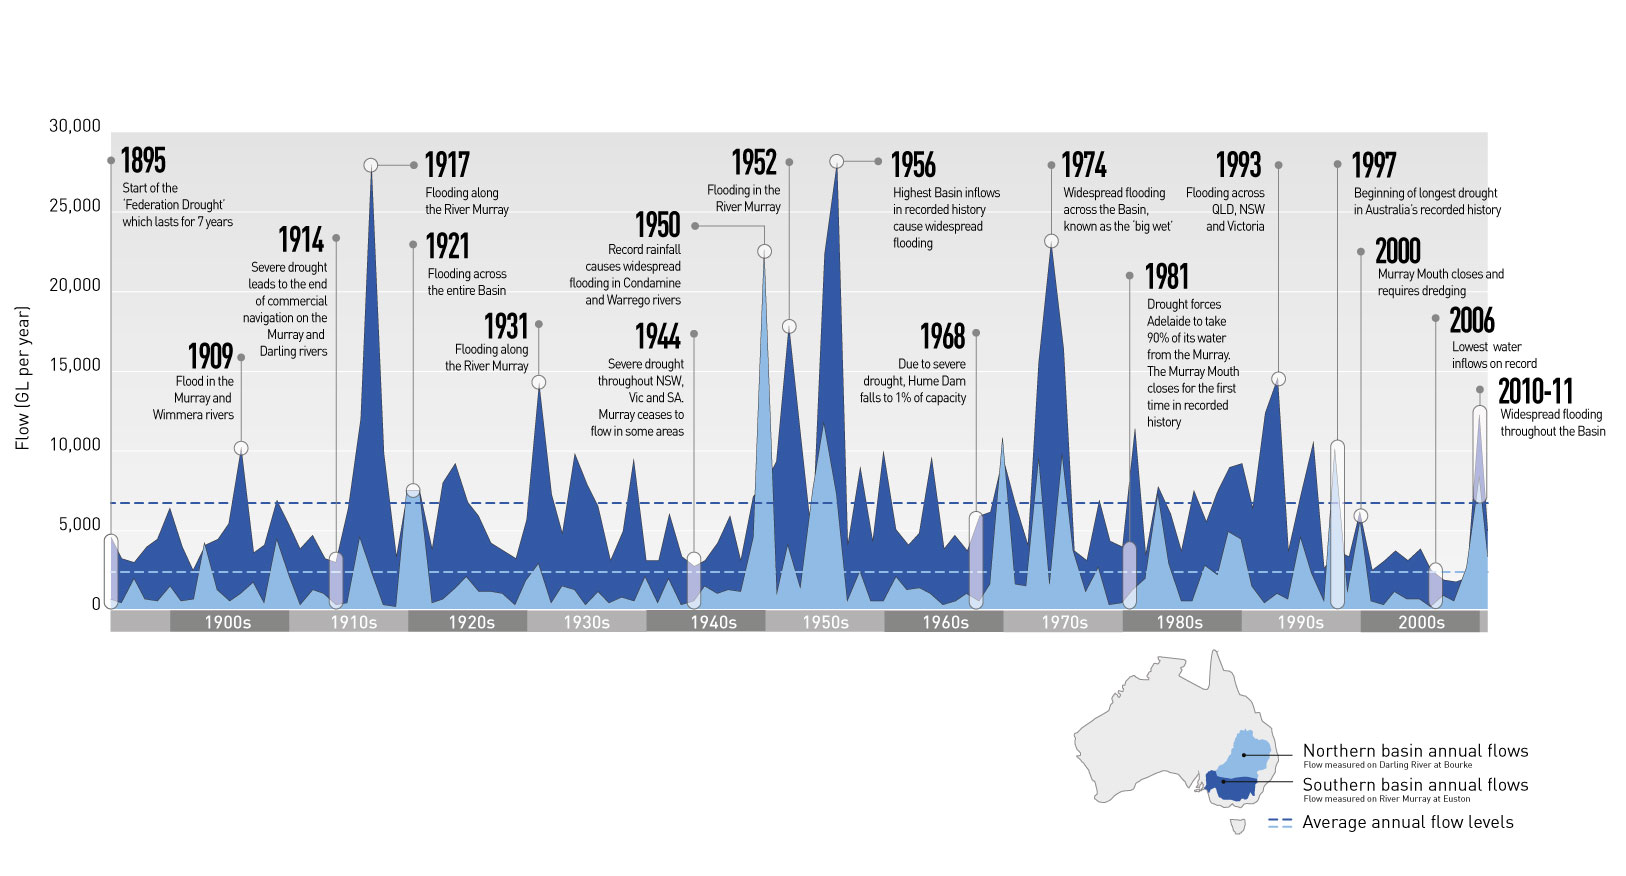 A timeline showing the inflows into the Basin from 1900 to present day. The area graph along the timeline has peaks and troughs which highlight periods of flood and drought.